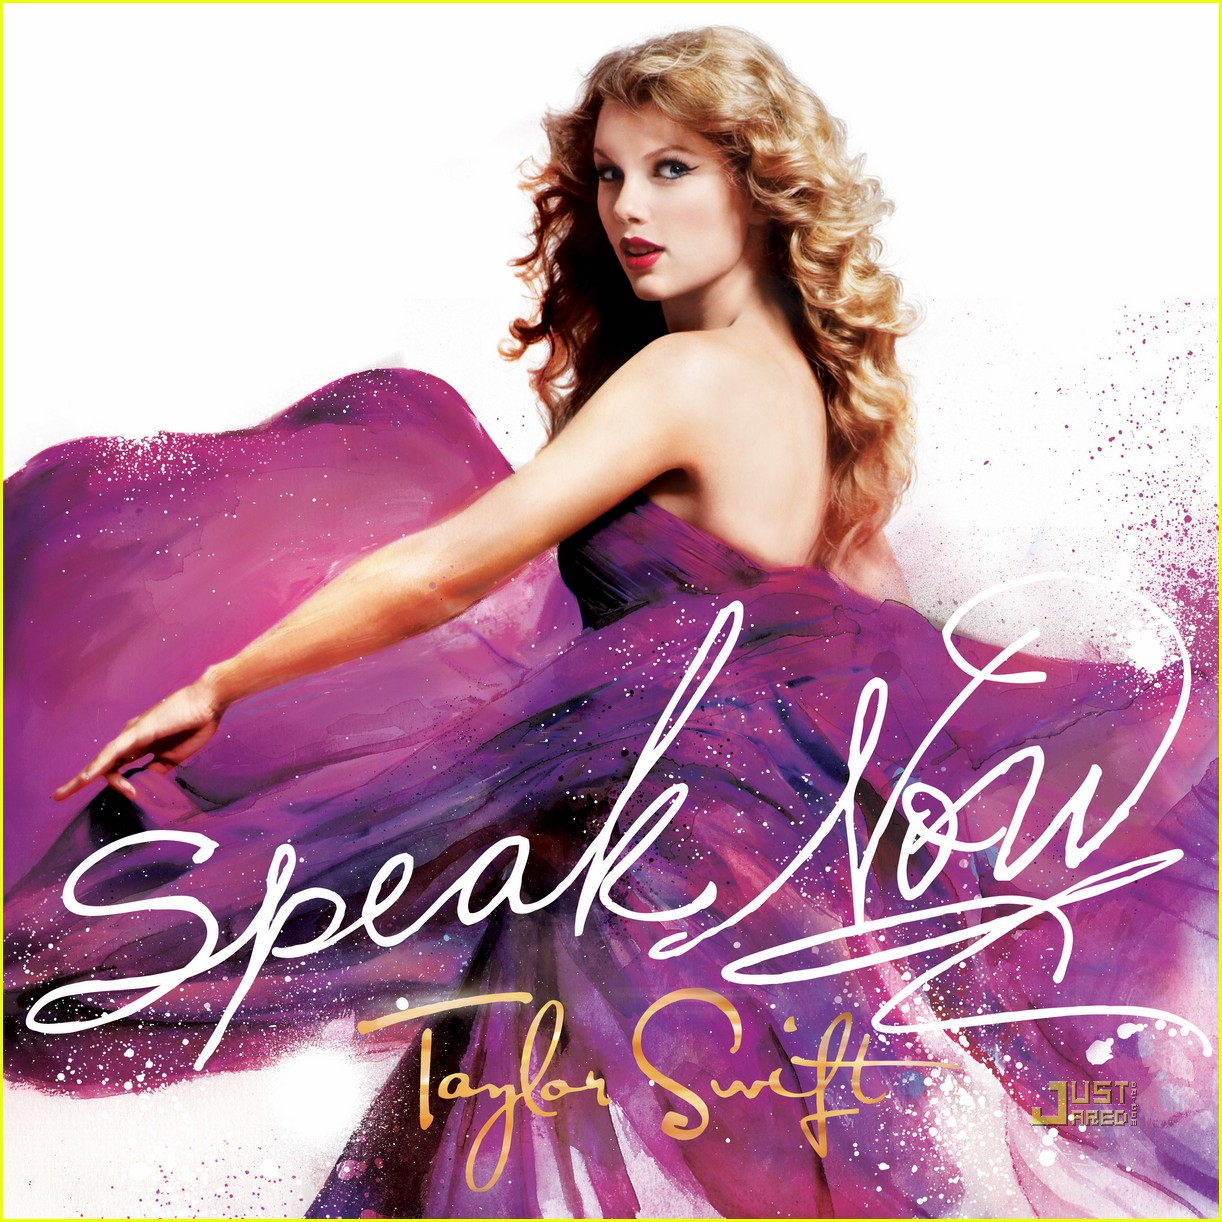 http://1.bp.blogspot.com/_i1-Dk6-m6qE/TH3AnnTjkJI/AAAAAAAAADY/wEQrbHcUsyk/s1600/taylor-swift-speak-now-album-cover-02.jpg